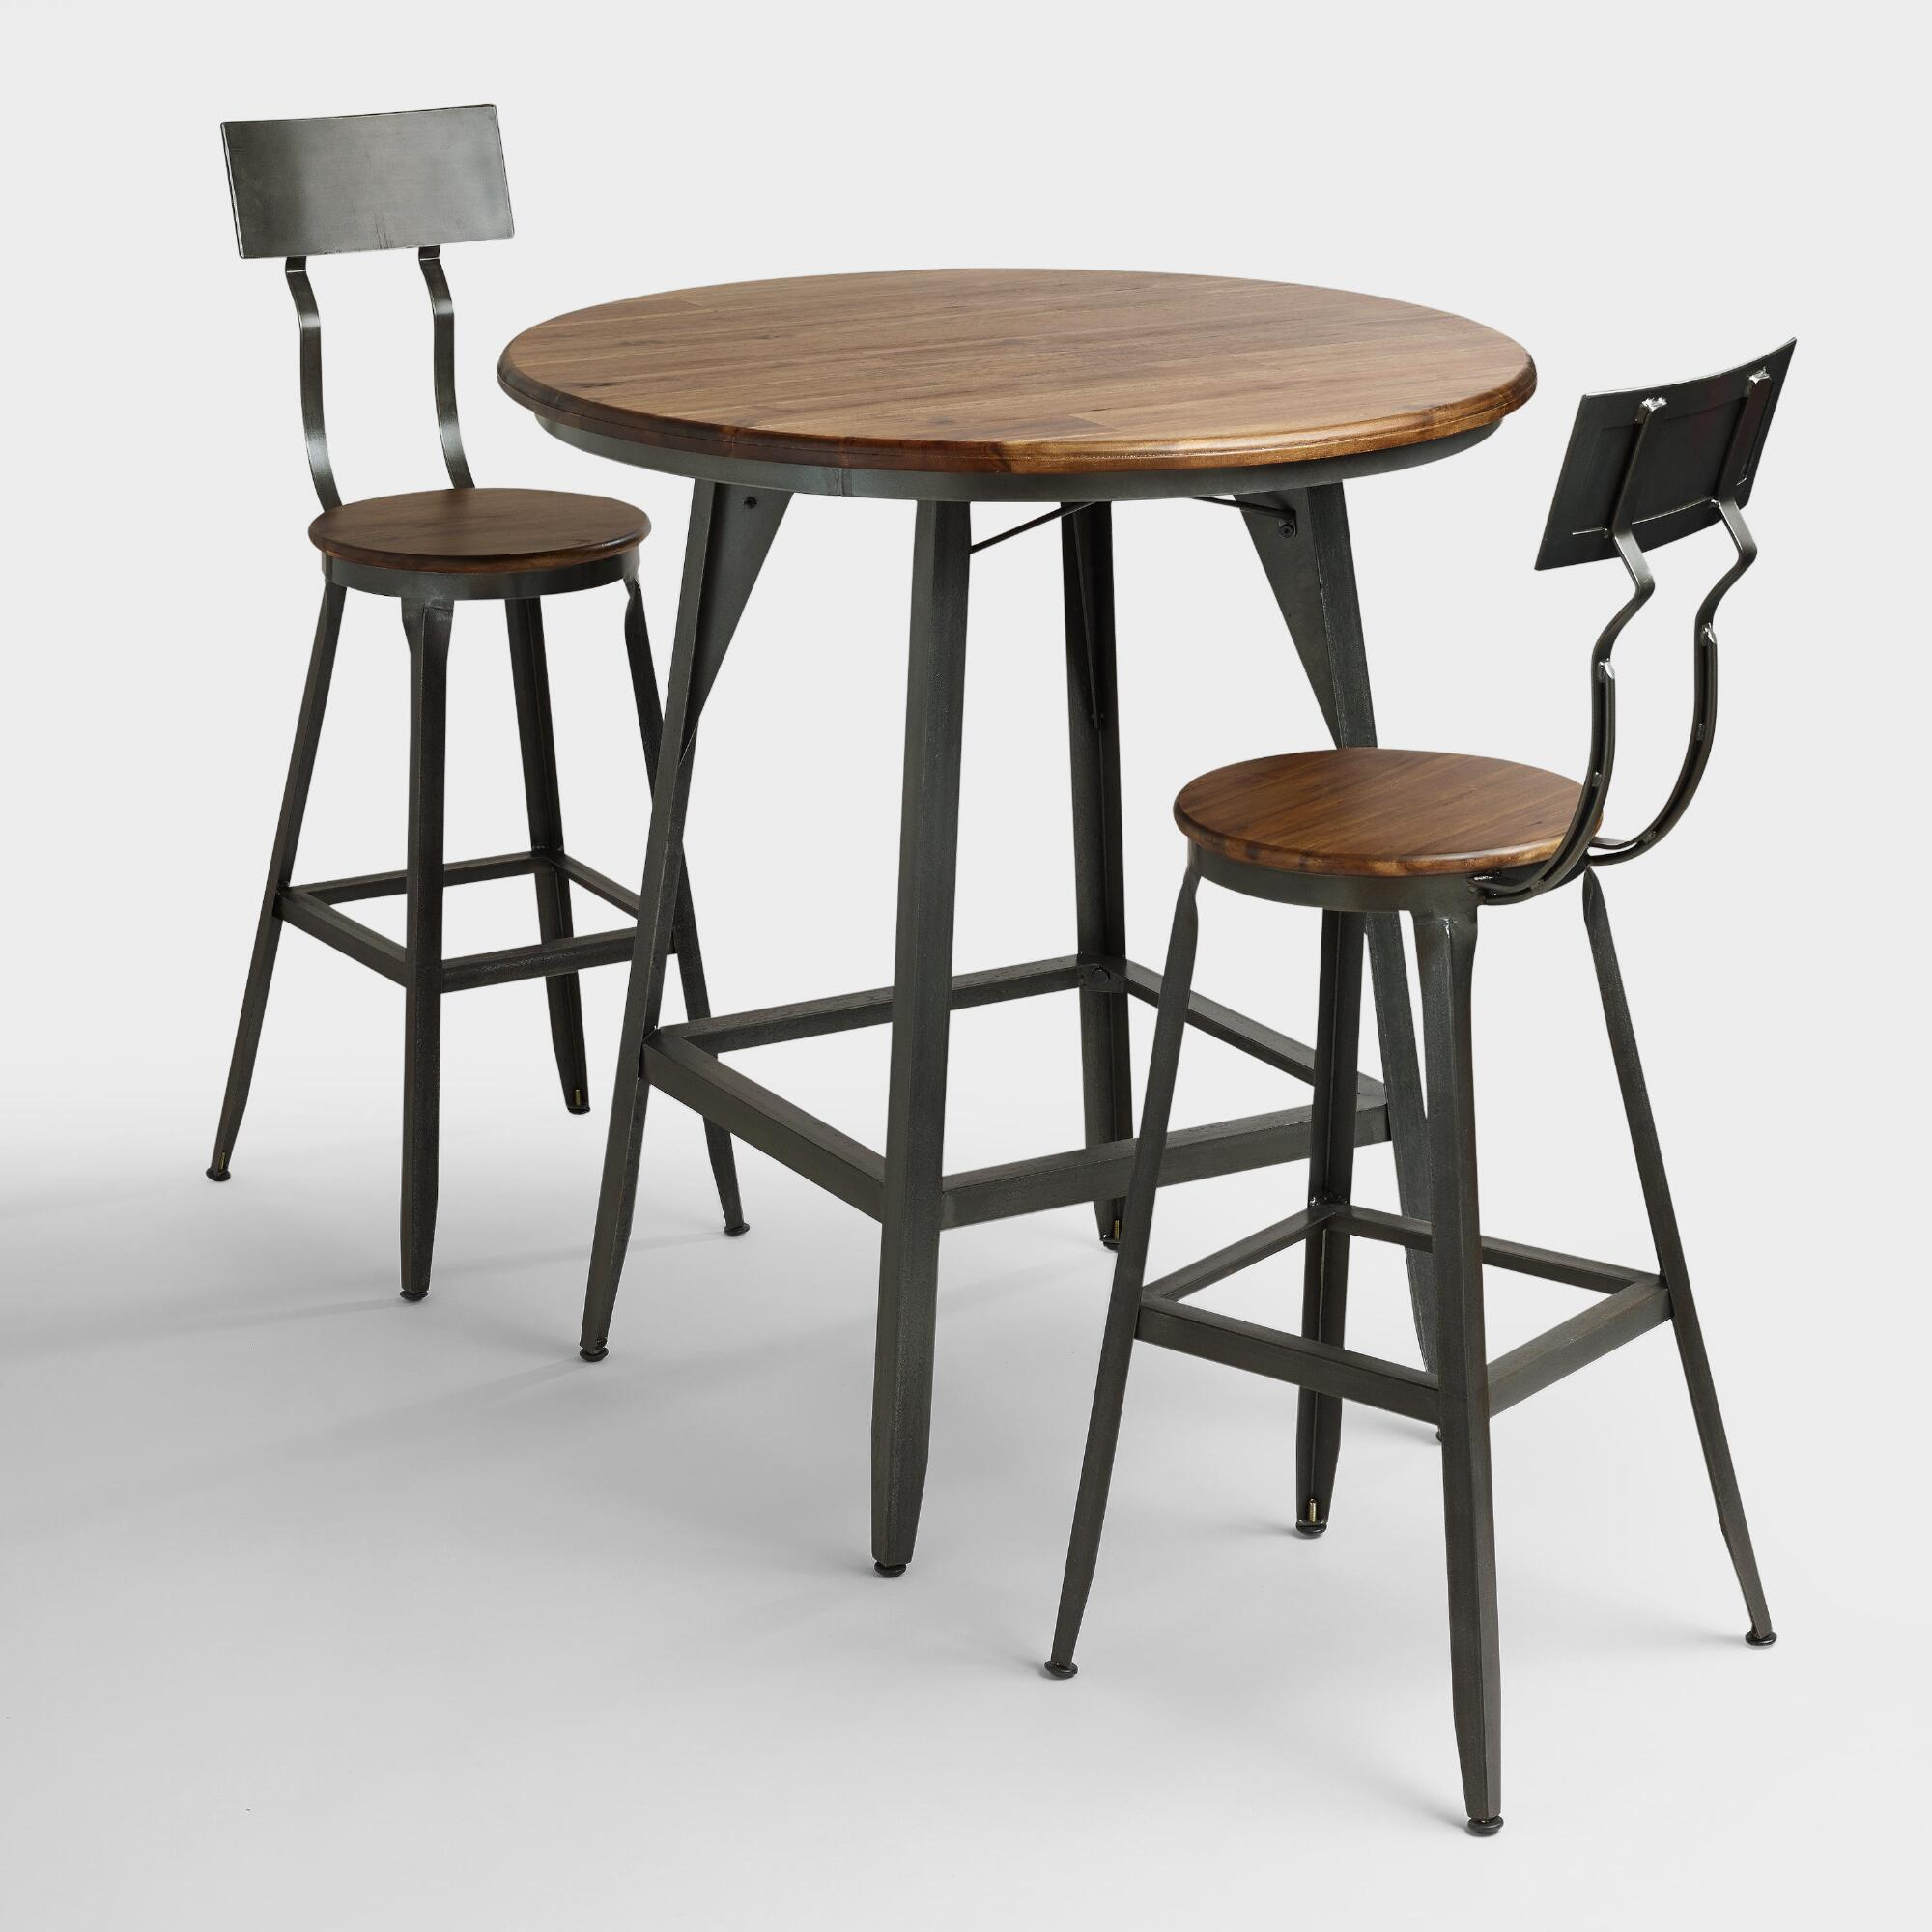 Industrial Style Round Dining Table Industrial Furniture Rustic Industrial Chic Furniture World